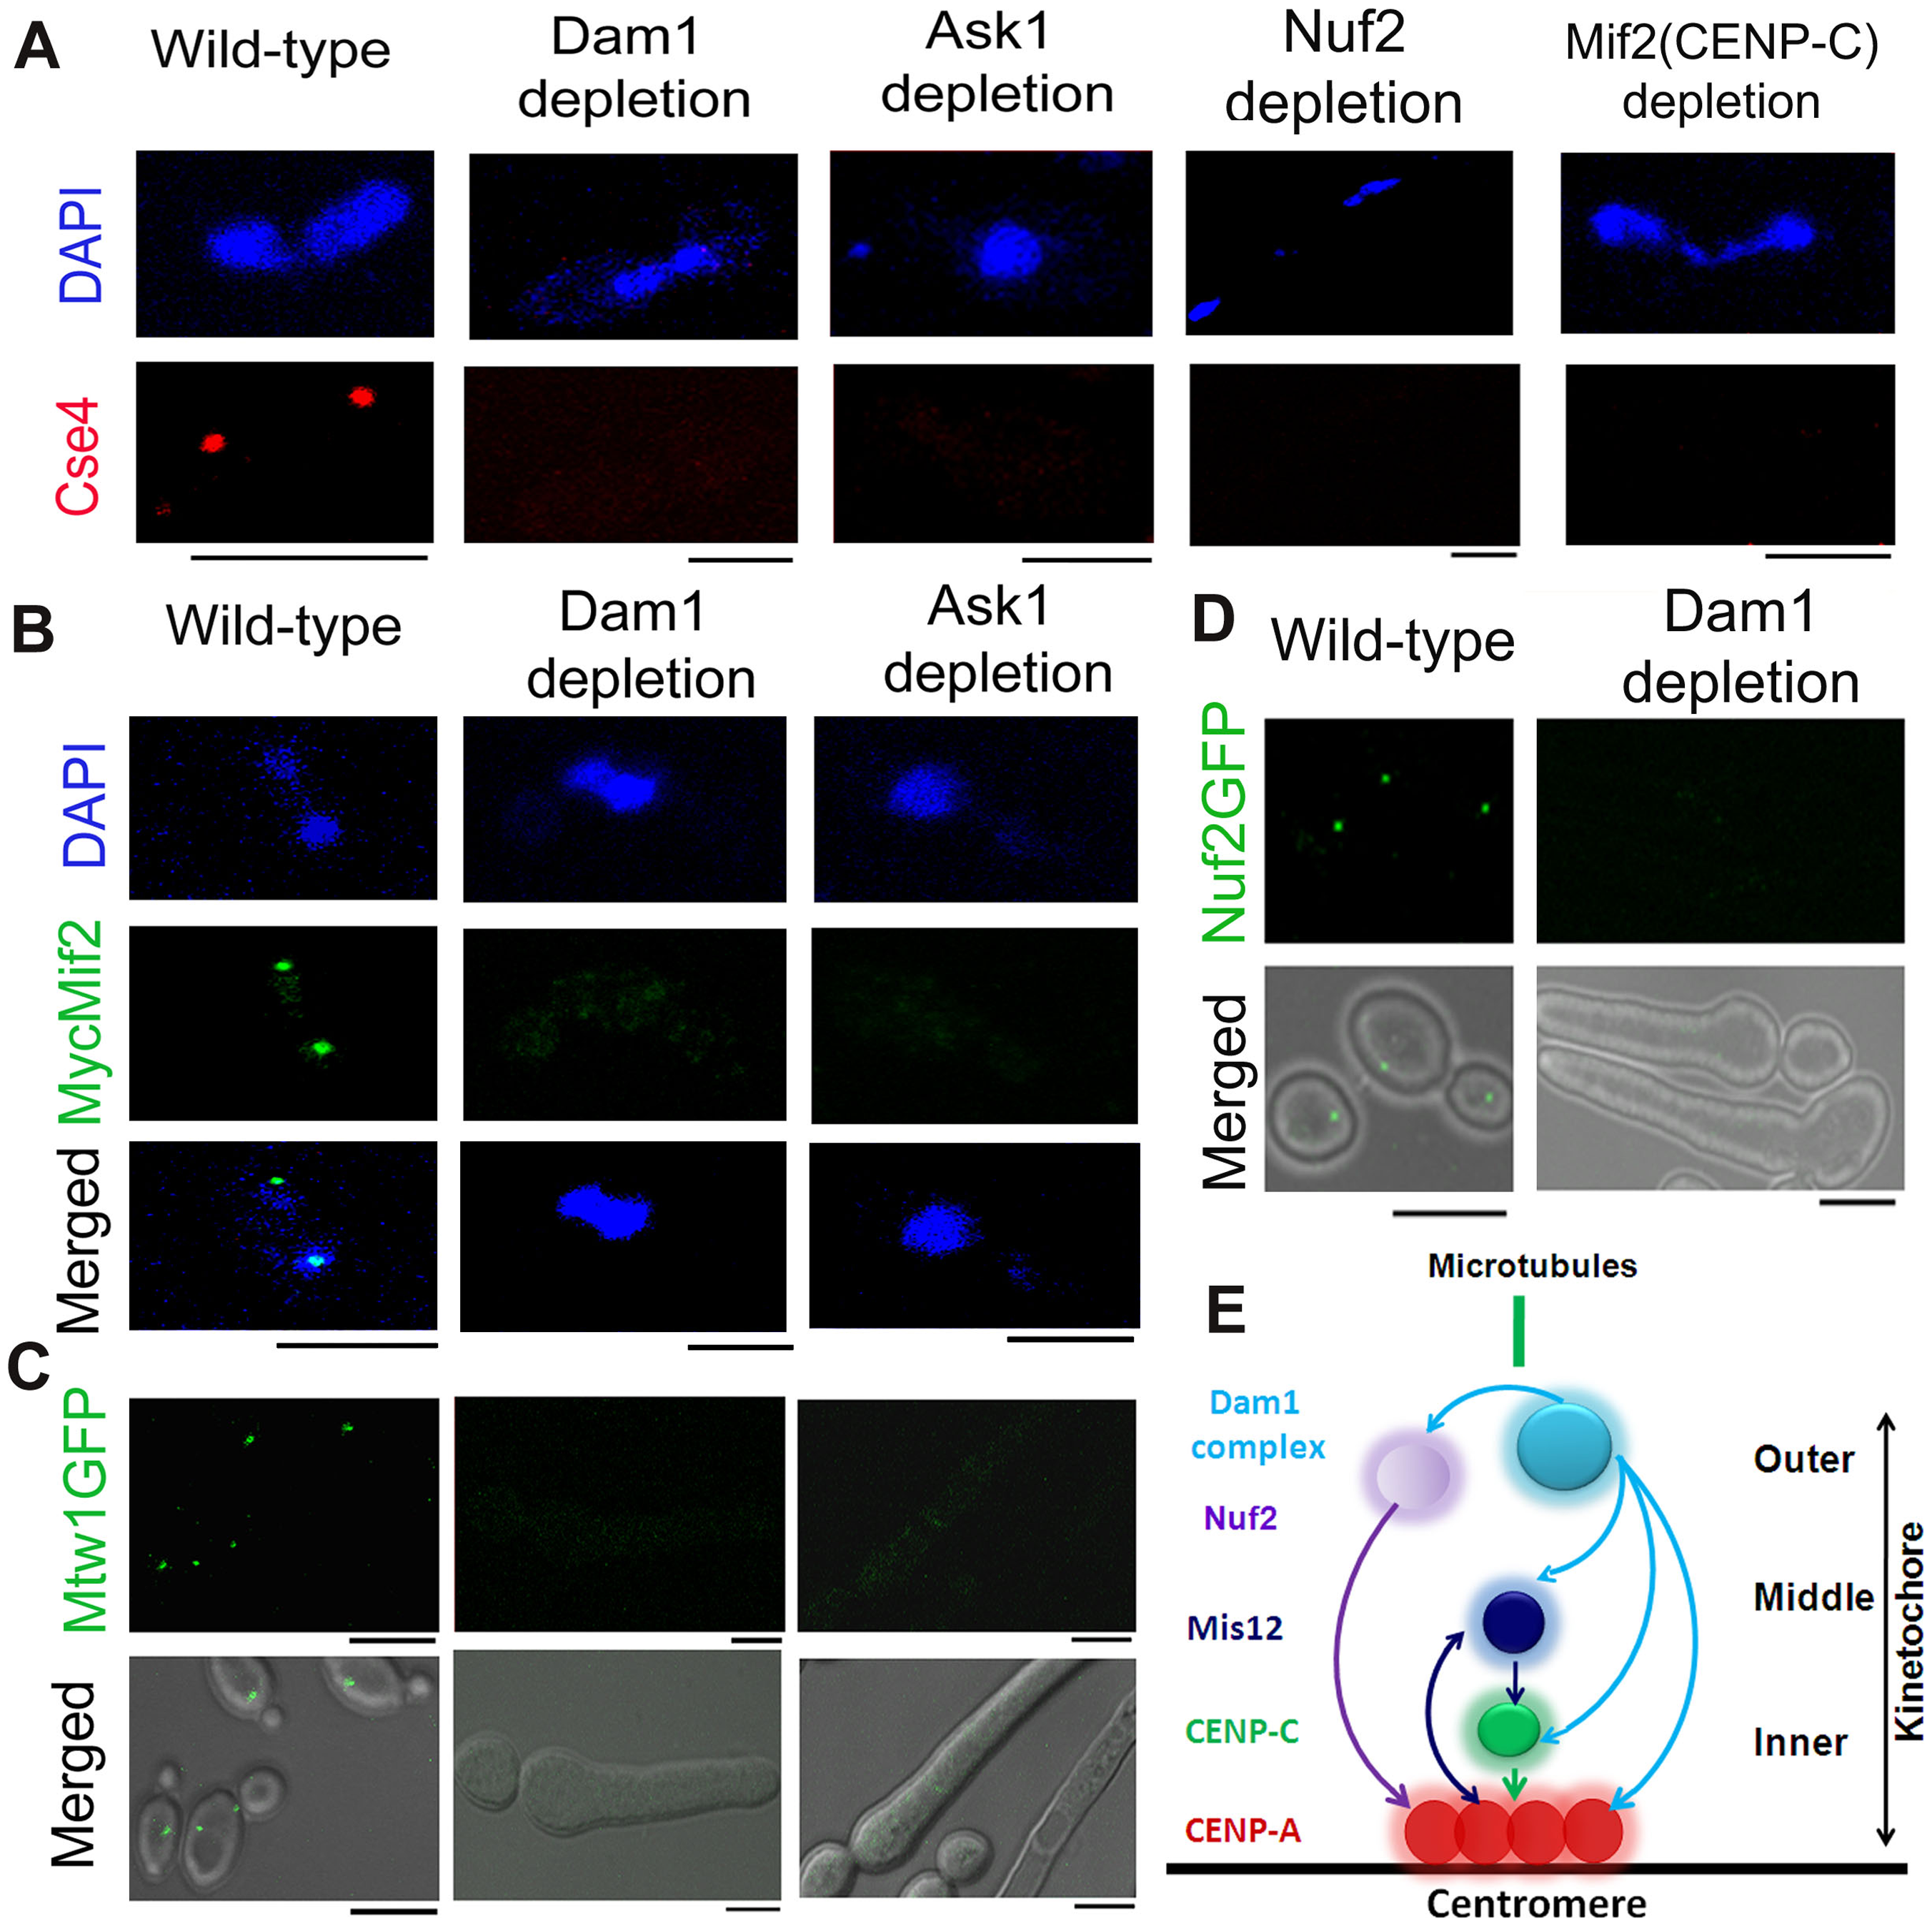 The process of kinetochore assembly is interdependent and coordinated in <i>C. albicans</i>.